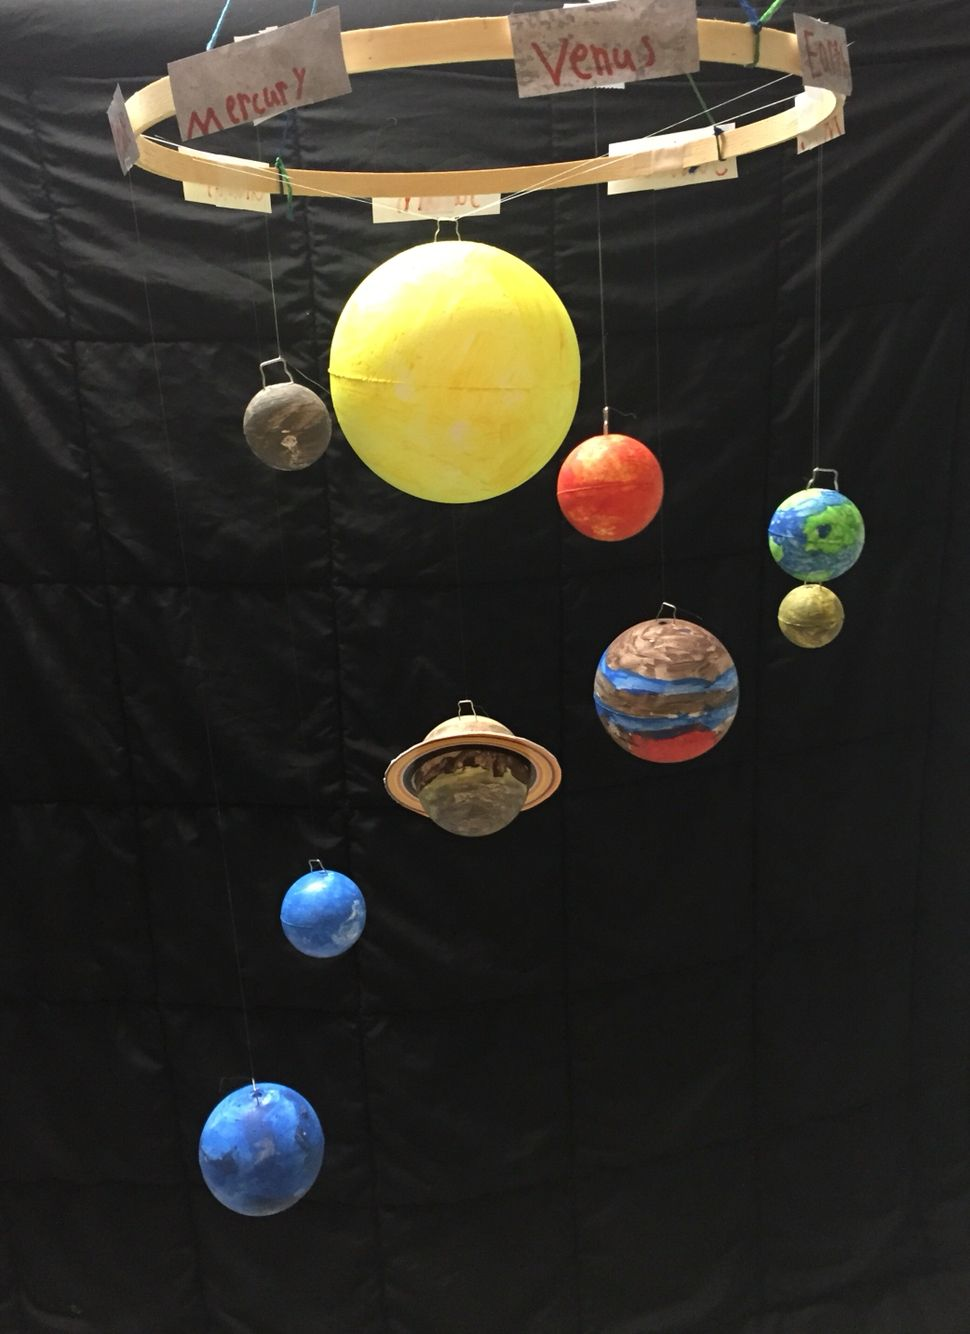 planets in the solar system project - photo #44